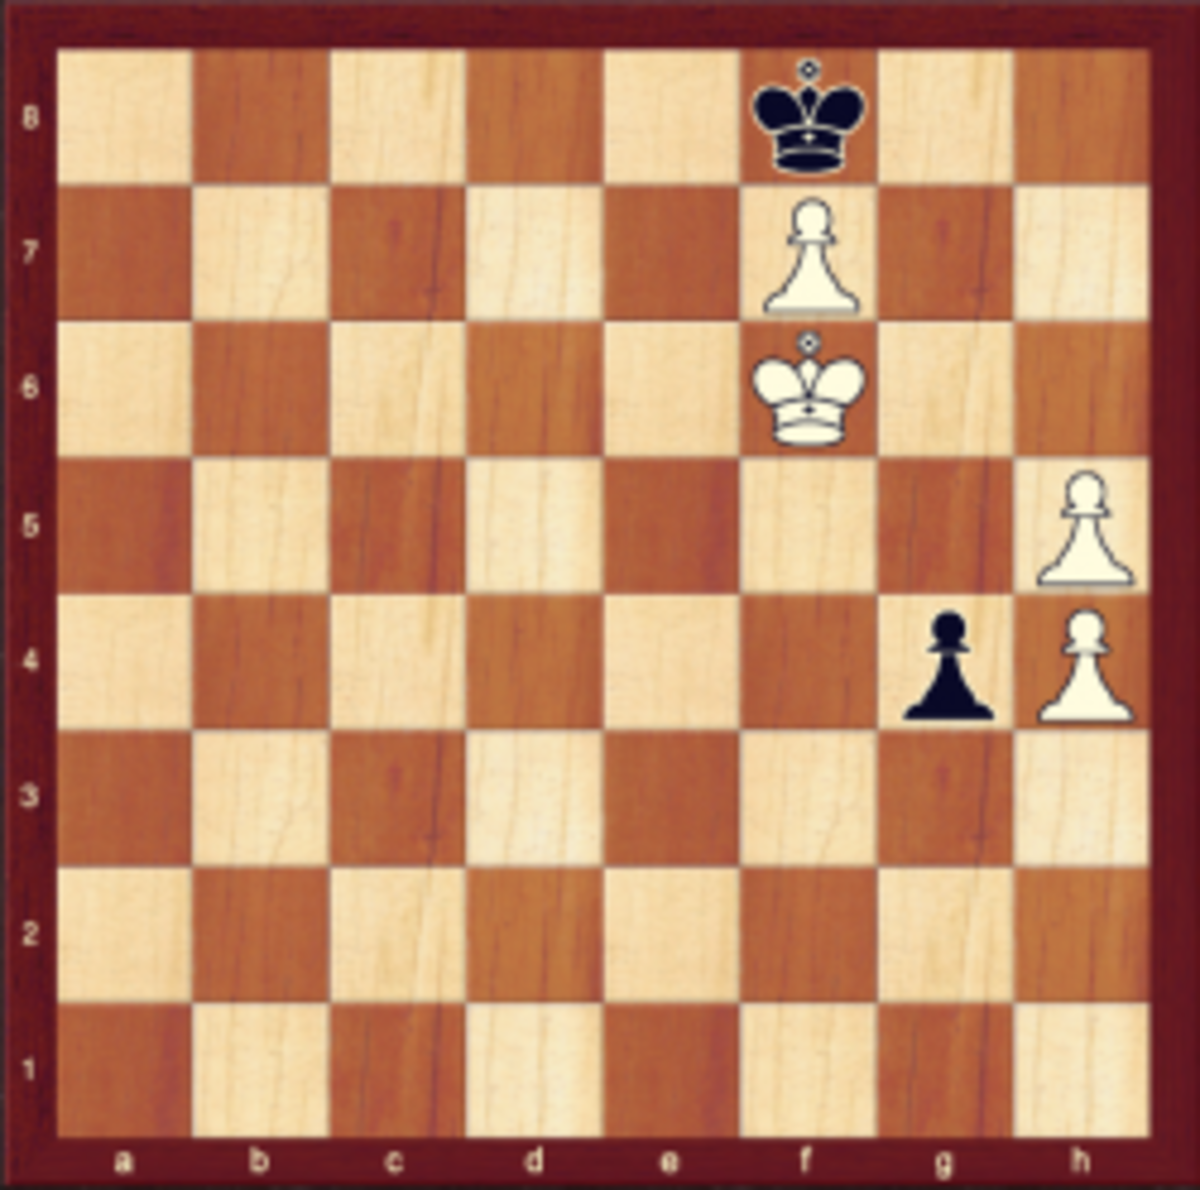 Final position in Tartakower vs. Koenig, Vienna 1922